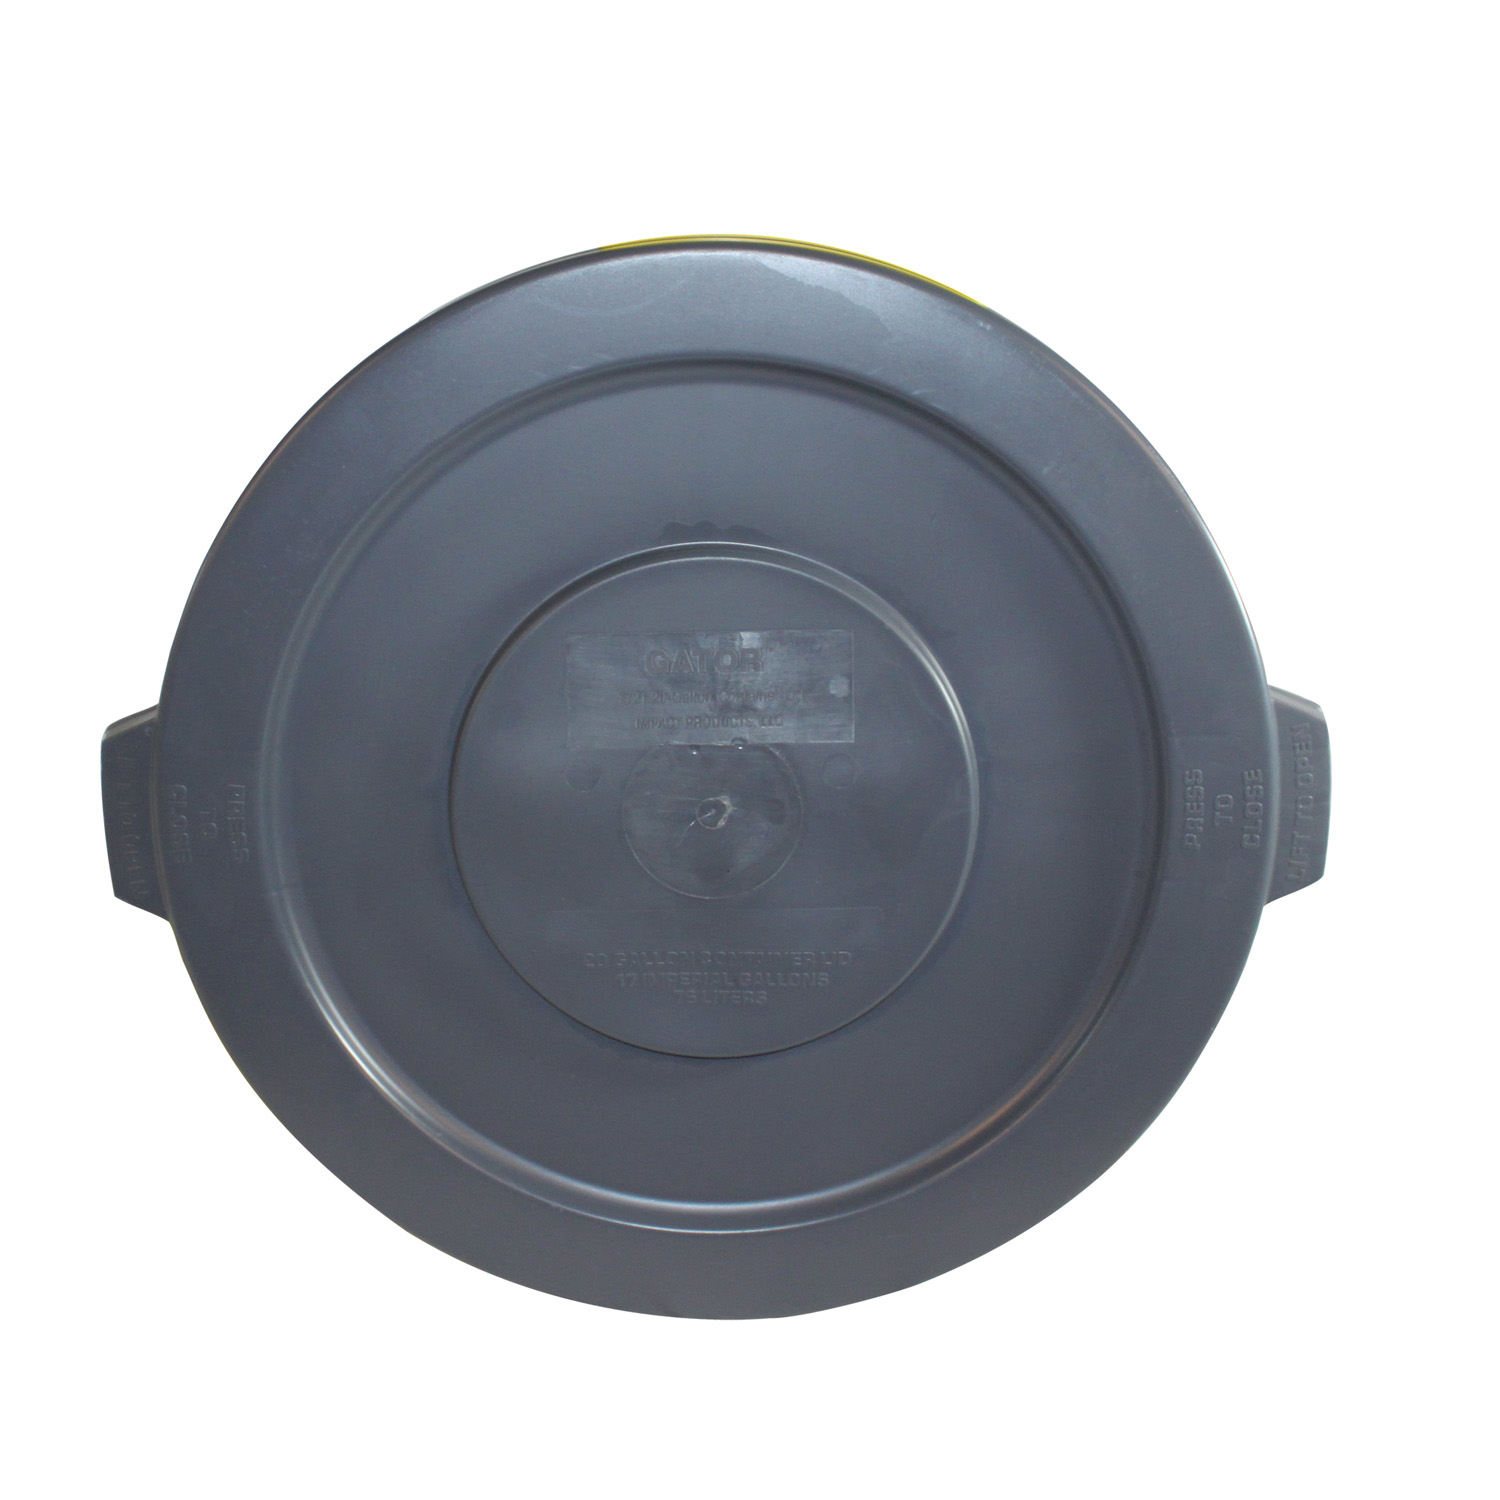 3700-022 Impact Products 7721-3 trash receptacle lid / top